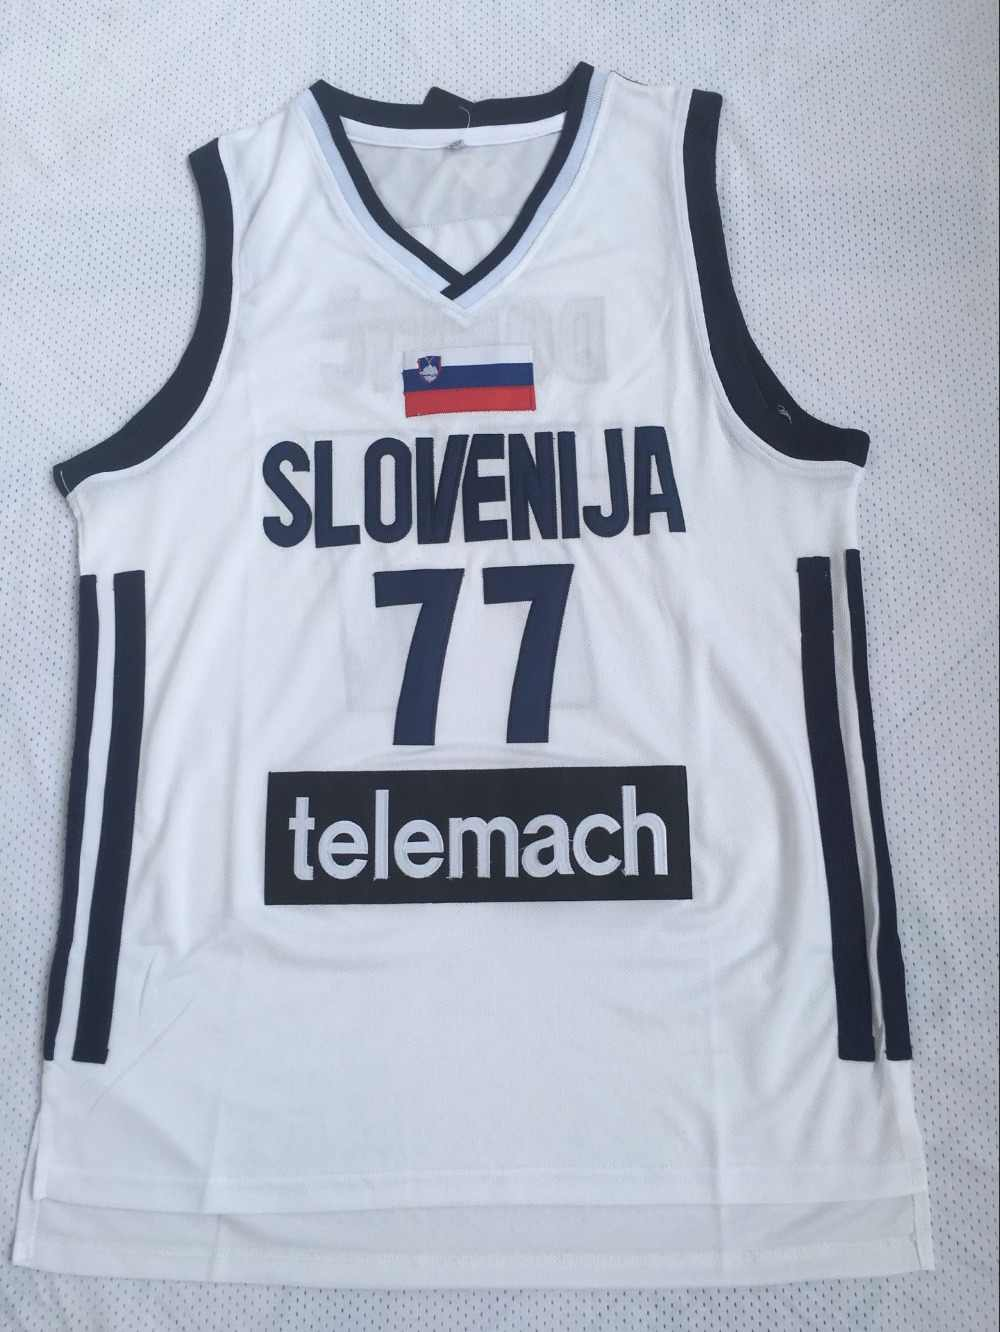 Mens  77 Luka Doncic Jersey Basketball Jersey slovenija Team Retro Stitched  Cheap Throwback BASKET Sports c0b3e5d53